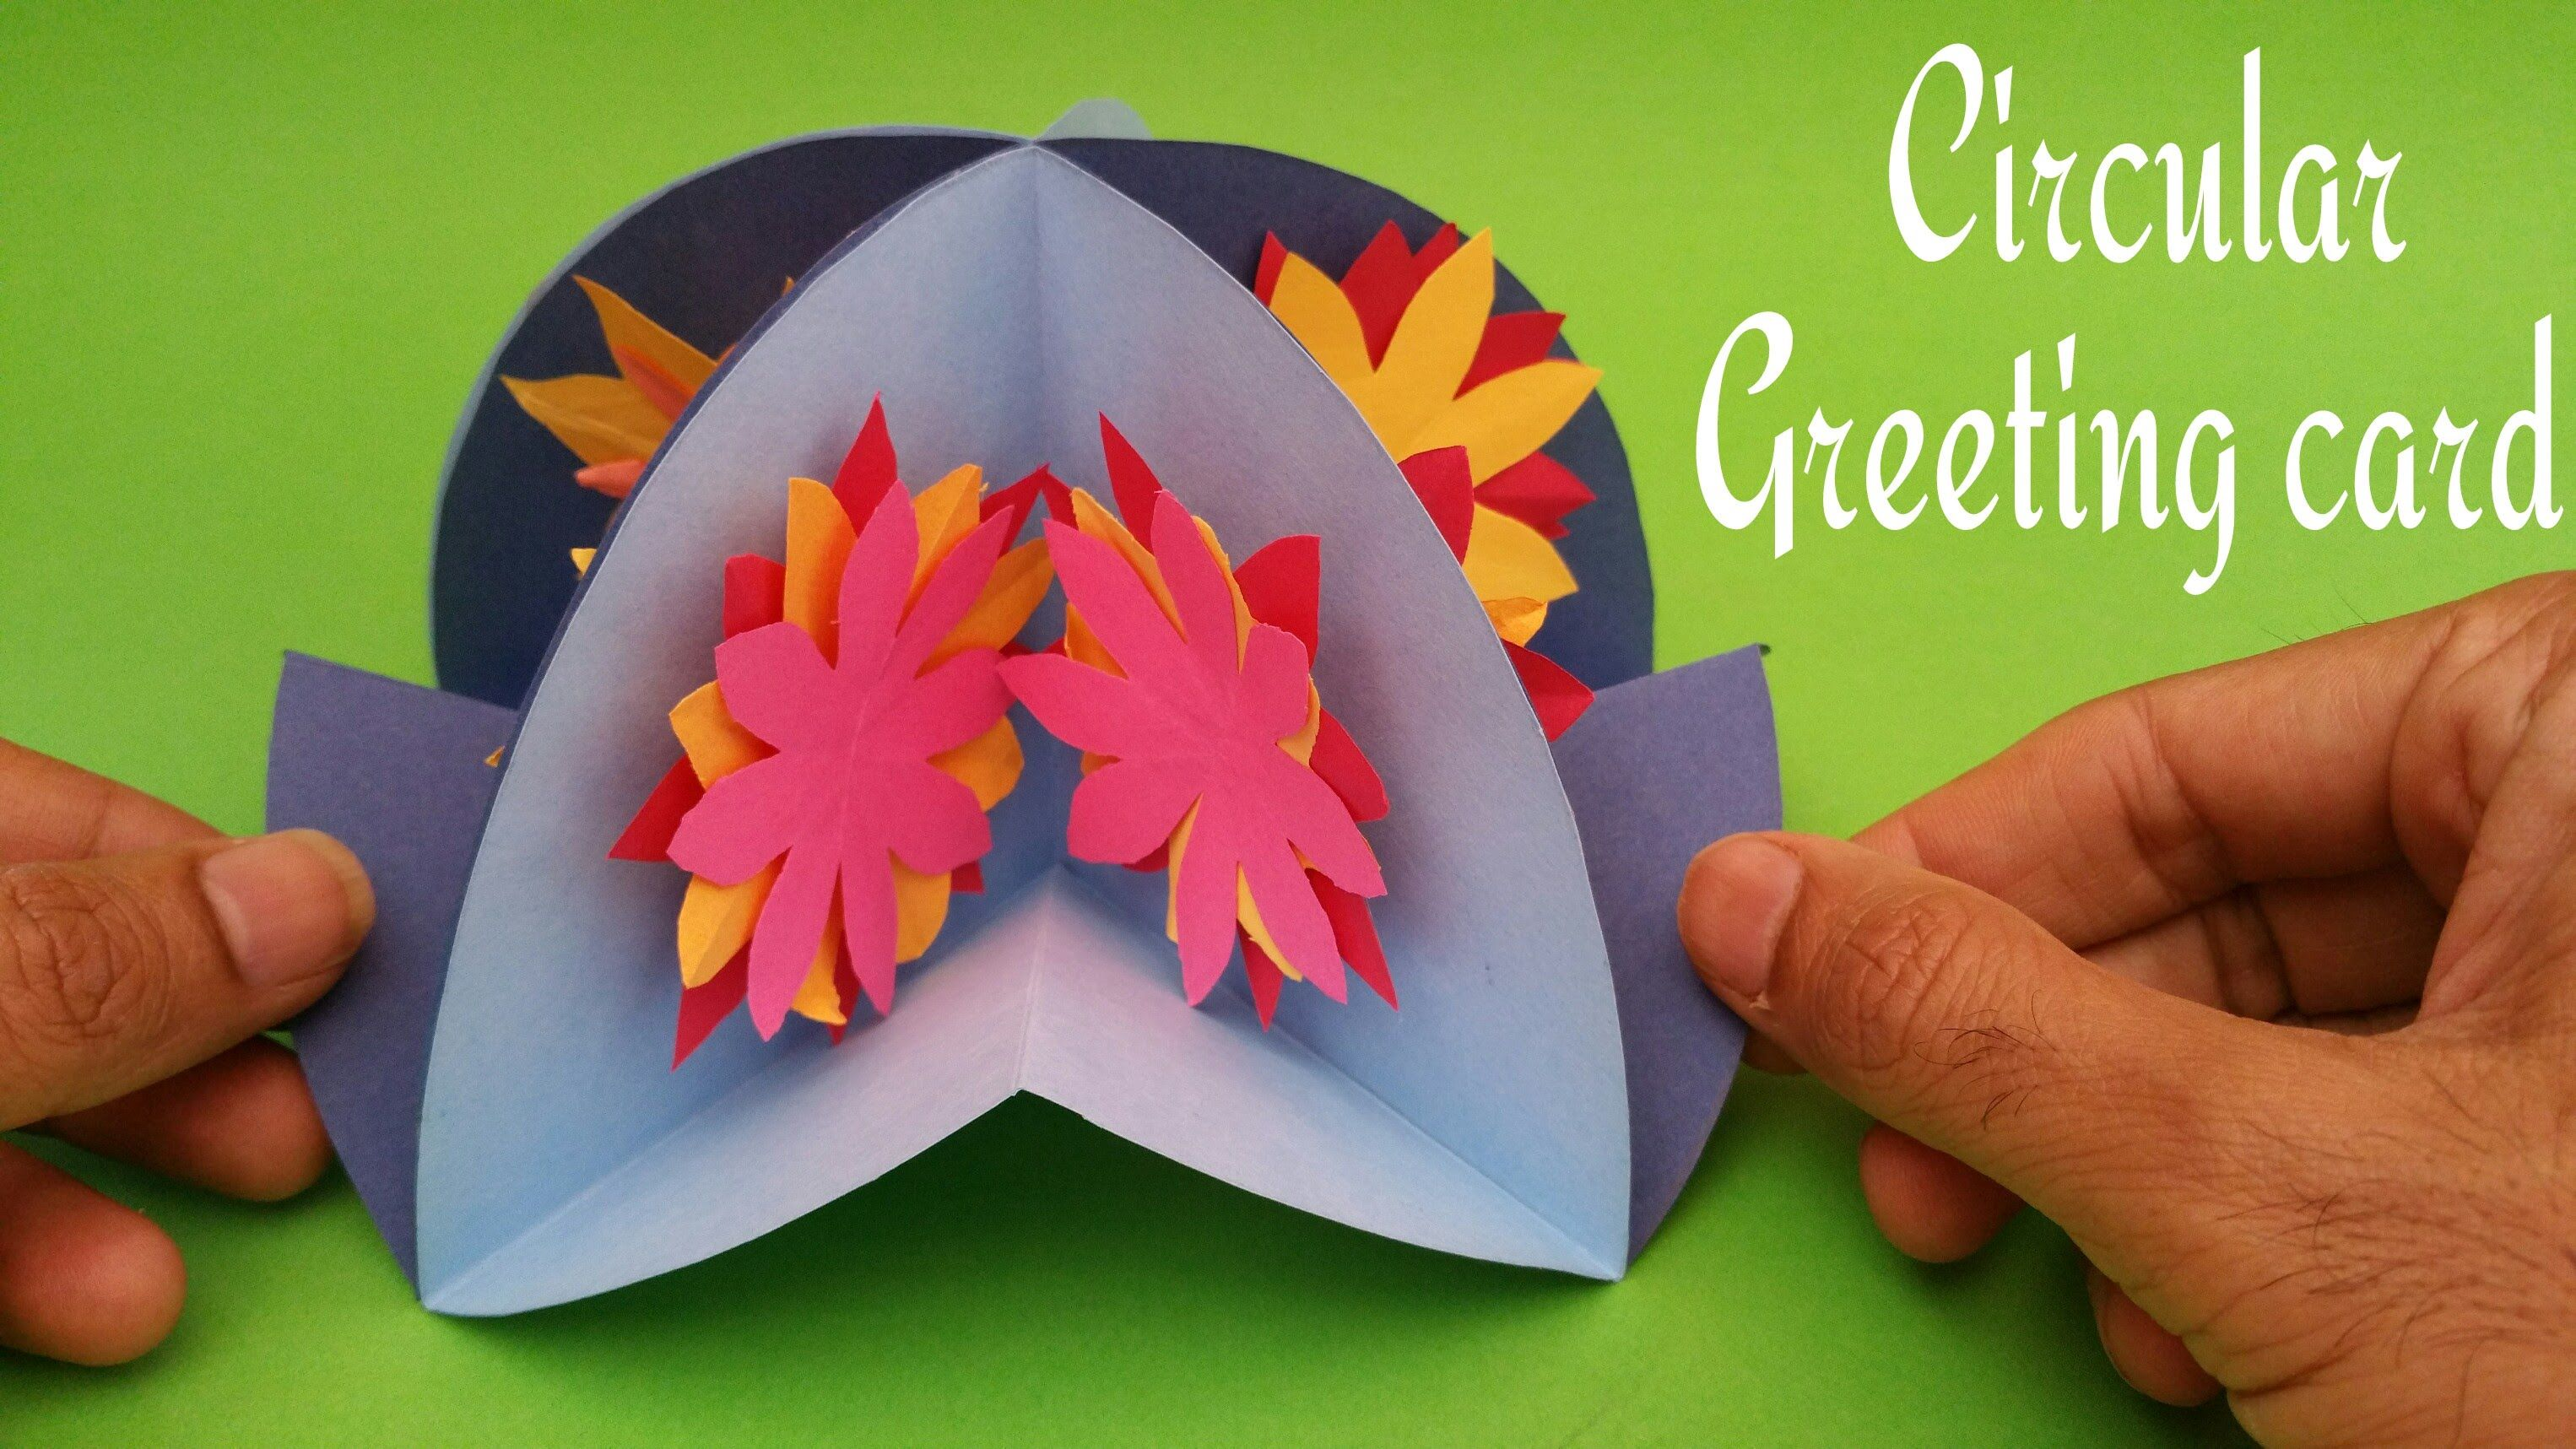 How to do a circular popup greeting card for birthday and special how to make a circular popup greeting card for birthday and special occasions paper craft tutorial kristyandbryce Choice Image